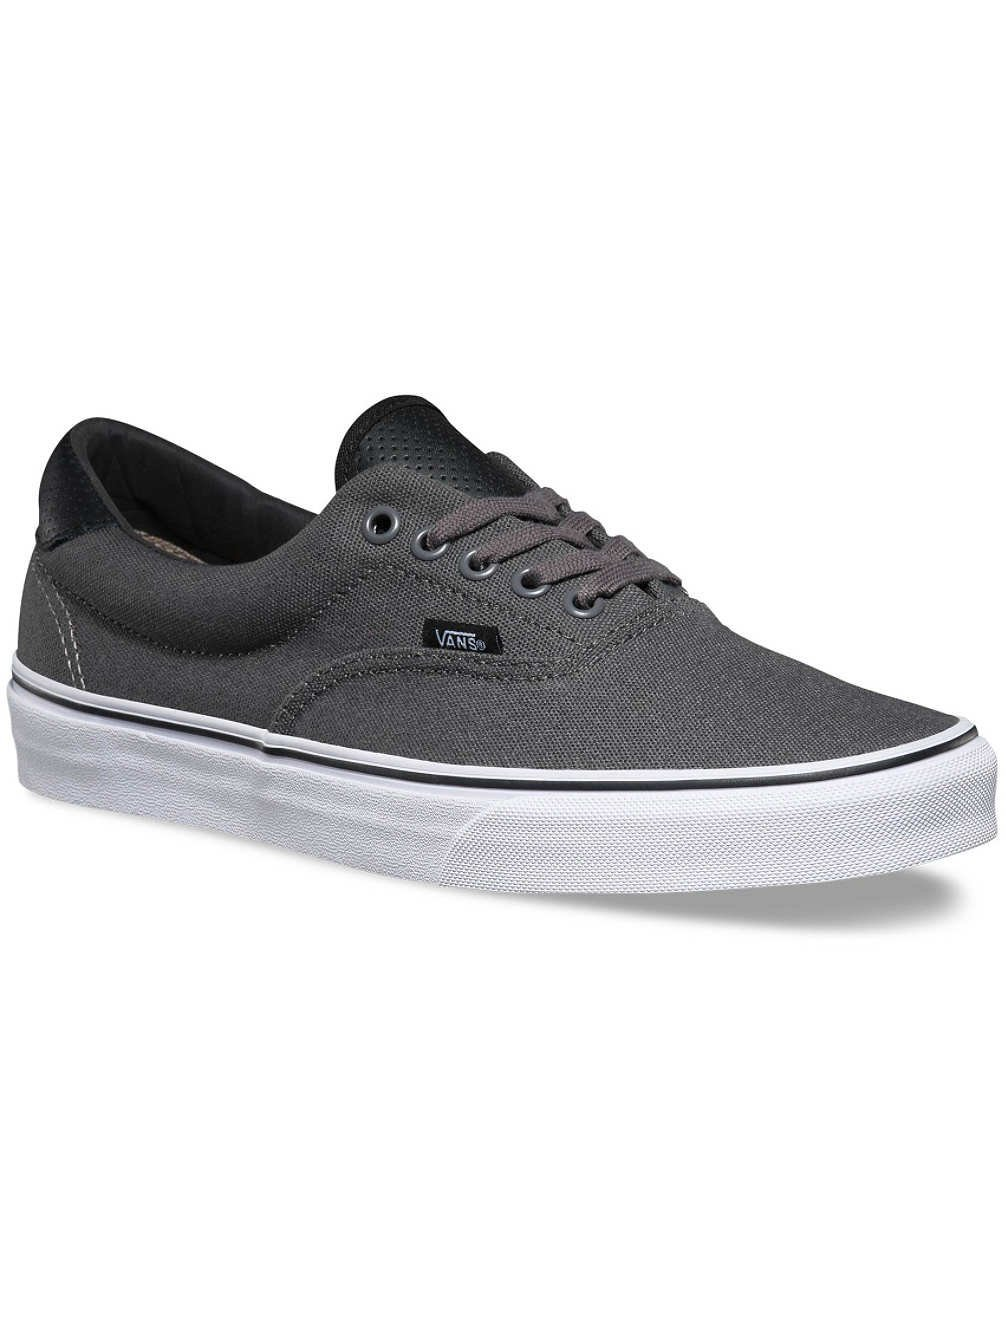 【VANS】バンズ/ERA エラ VN-0UC6DCT メンズシューズ/26.0cm27.5cm/Dark ShadowDress Blues/2カラー B019HDIWNW 6 D(M) US|(C&p) Pewter/Black (C&p) Pewter/Black 6 D(M) US